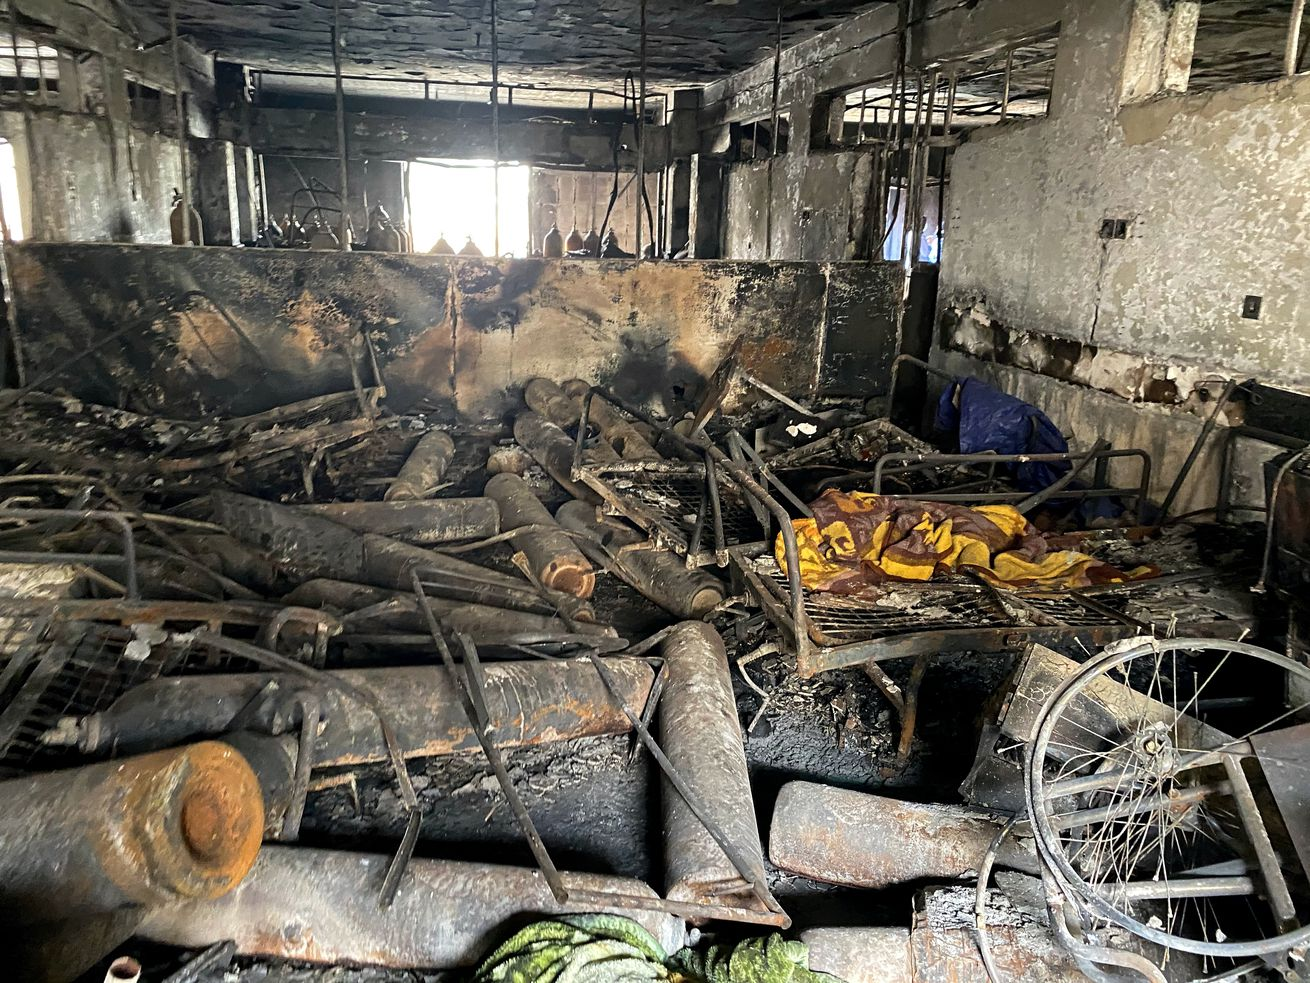 The intensive care unit at the Ibn al-Khatib hospital is damaged following a fire that broke out last Saturday evening killing over 80 people and injuring over 100, in Baghdad, Iraq, Tuesday, April 27, 2021.